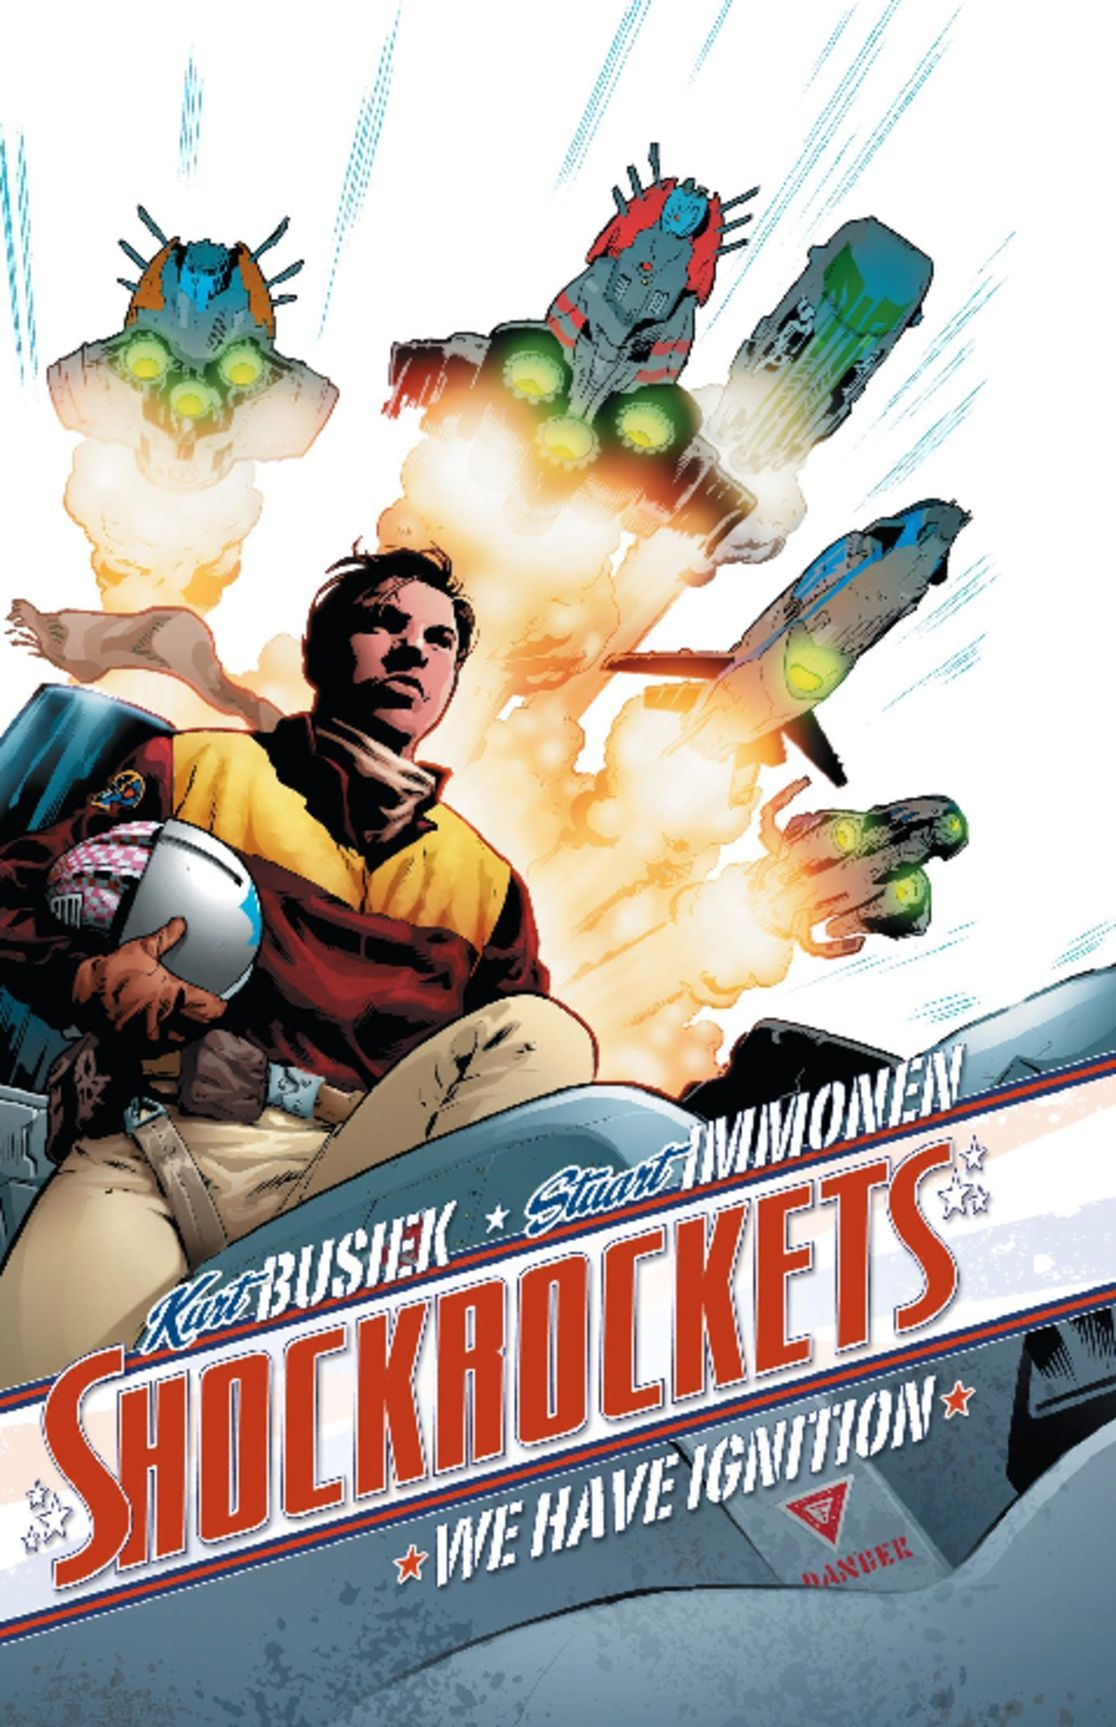 Shockrockets Digital